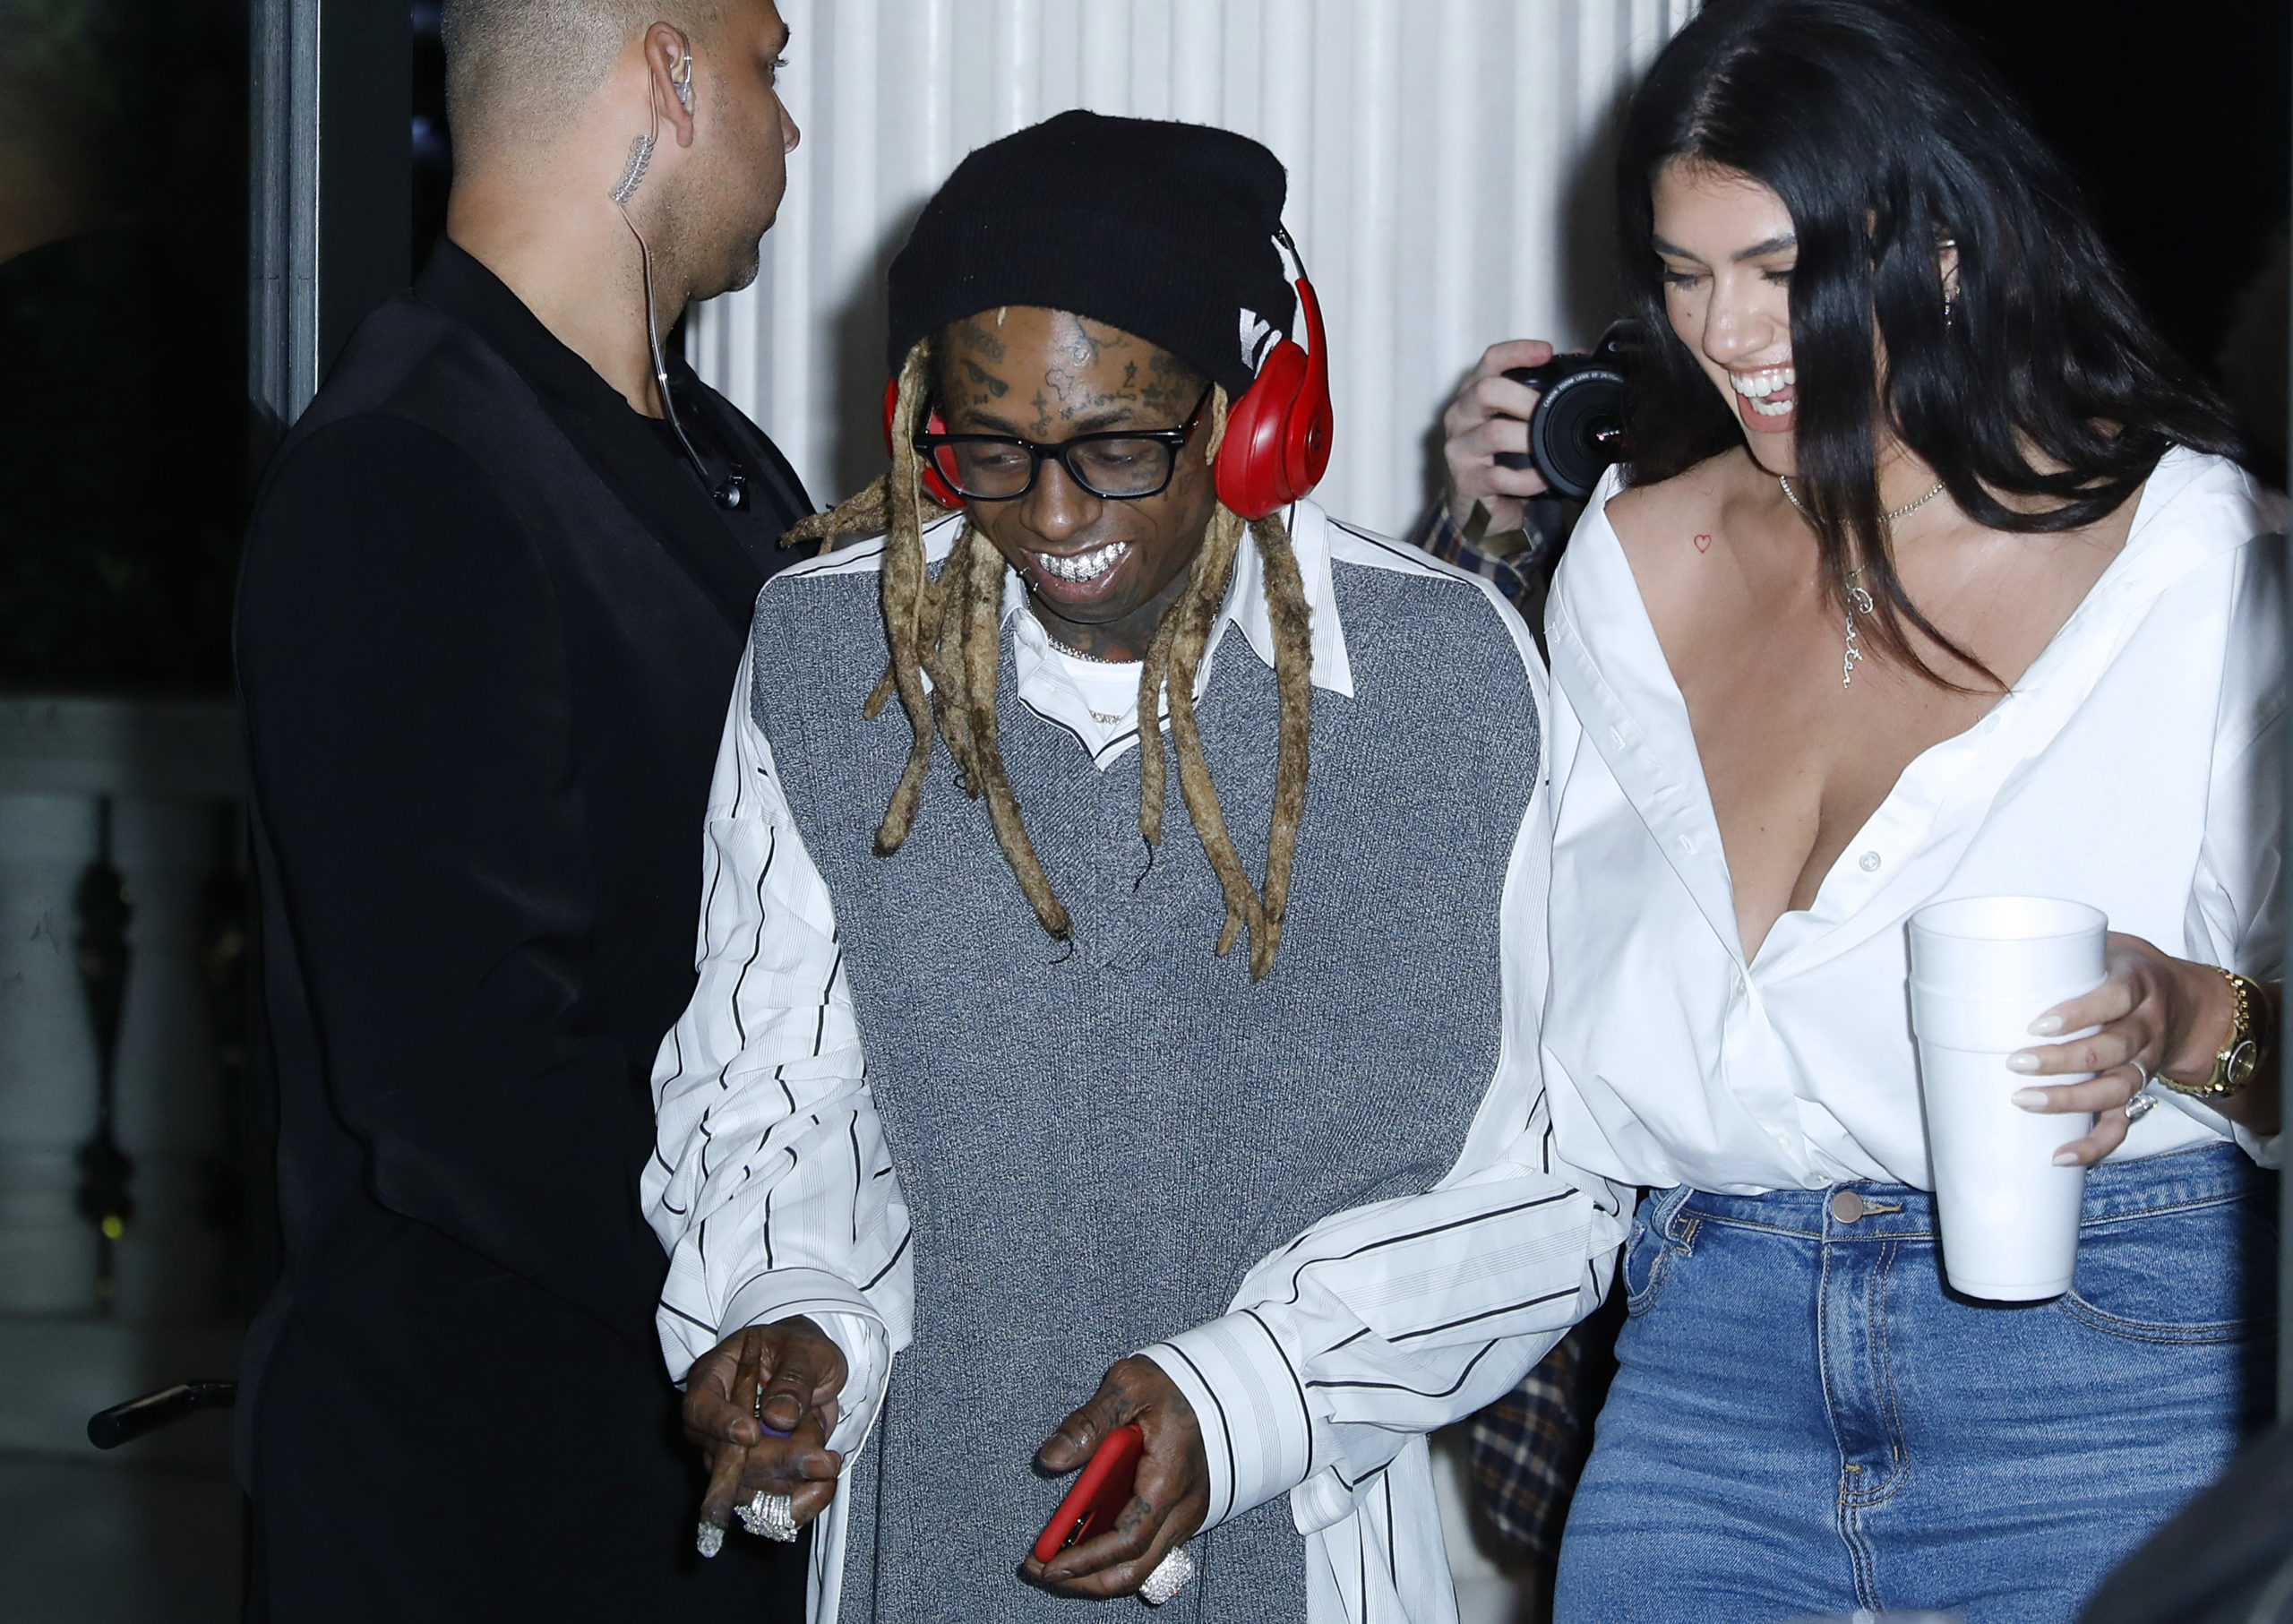 Lil Wayne & His Fiancée La'tecia Thomas Are Finally Instagram Official